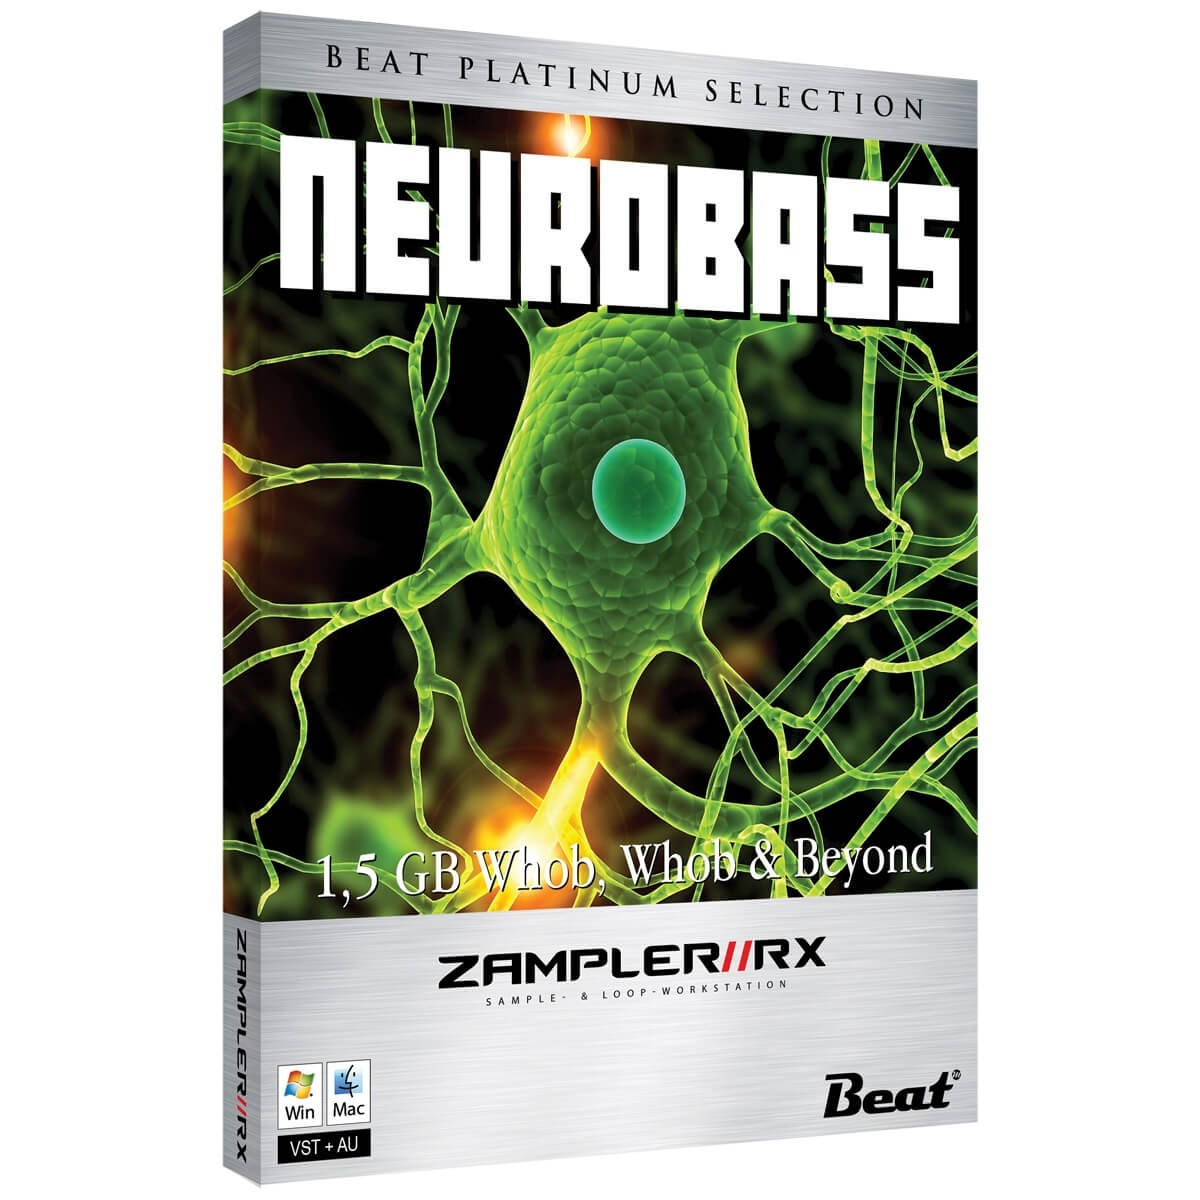 NEUROBASS – 37 patches for Zampler//RX workstation (Win/OSX plugin included)